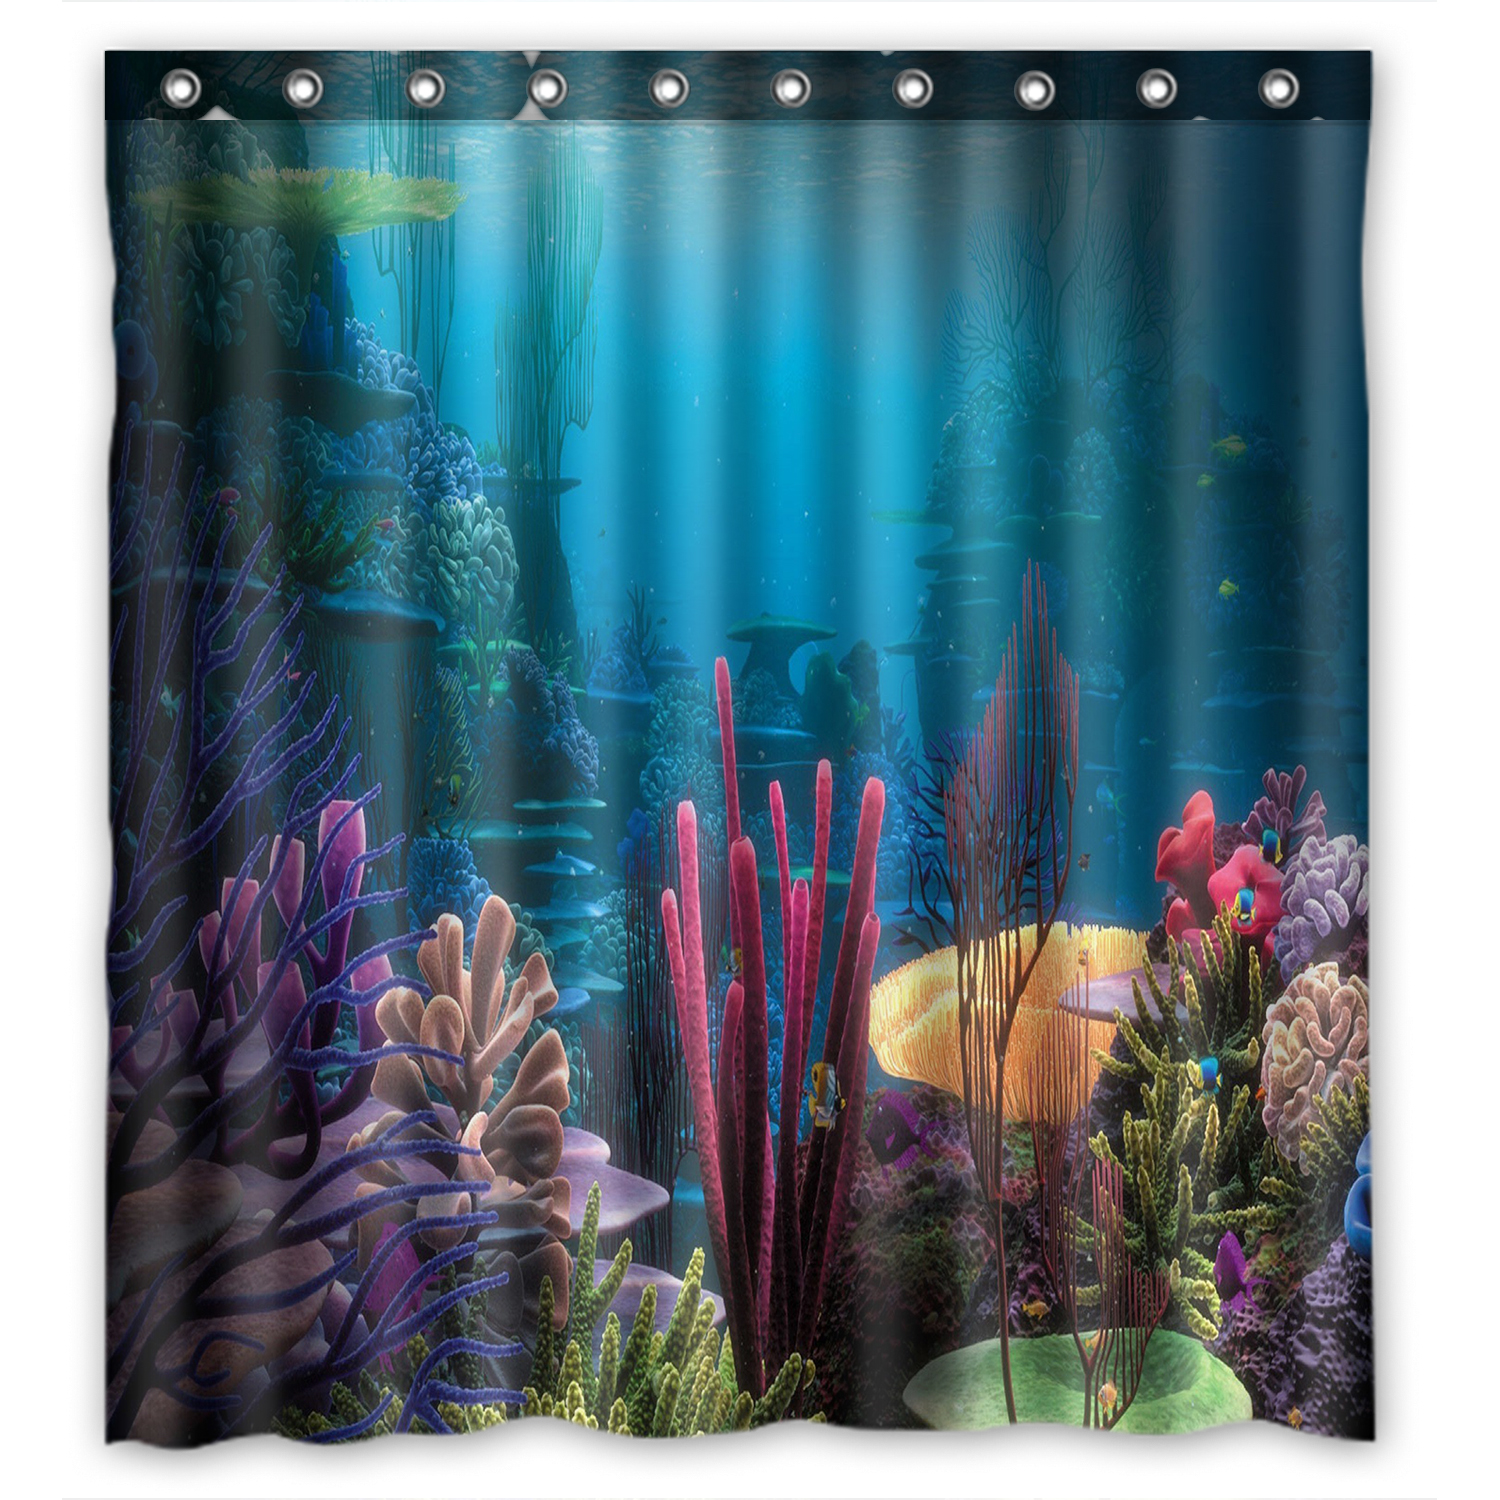 zkgk underwater world sea life ocean animals fish coral waterproof shower curtain bathroom decor sets with hooks 66x72 inches